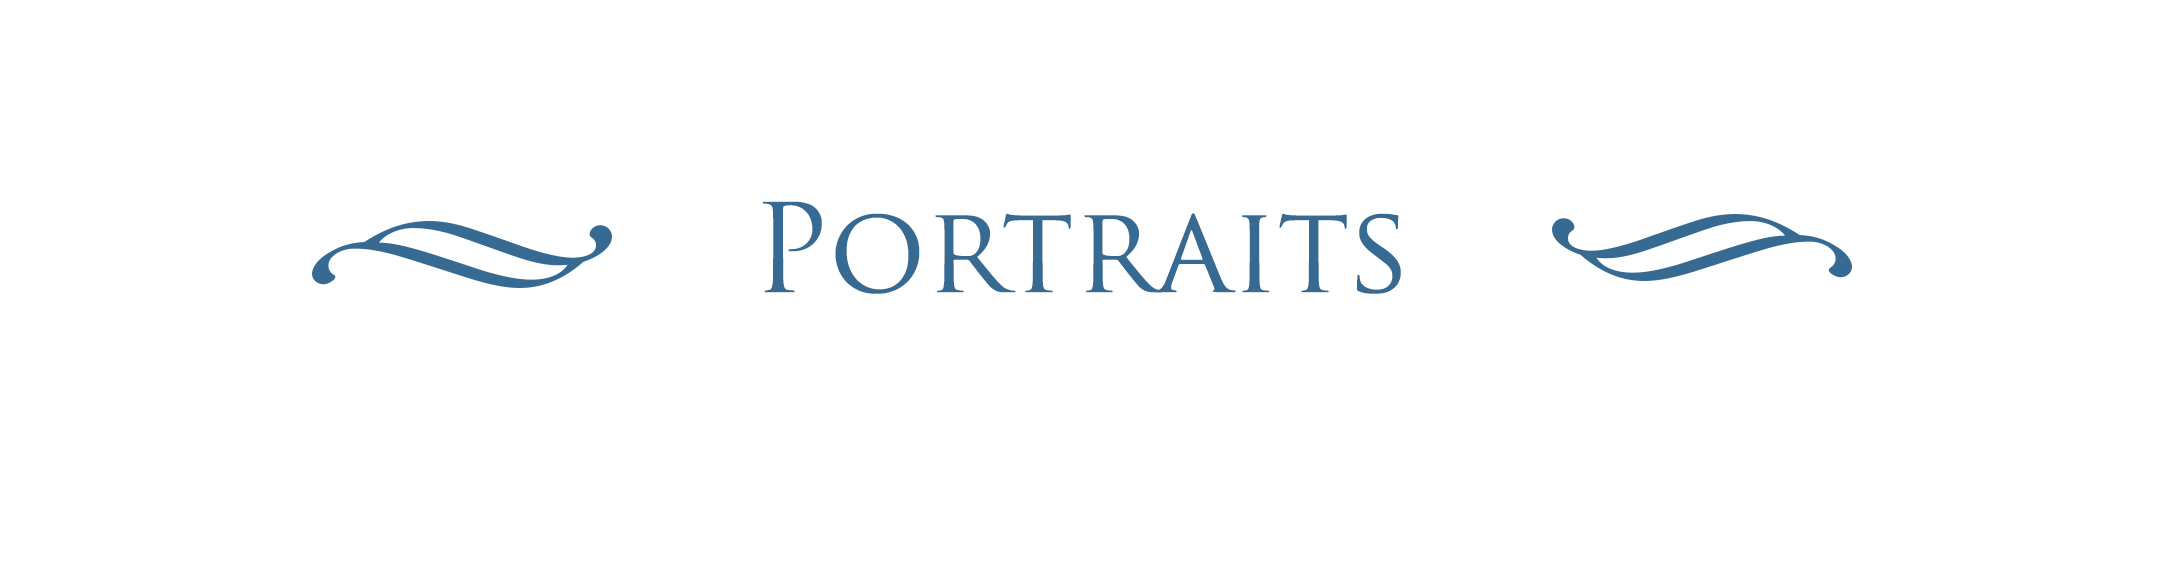 Portraits Header_blue copy.jpg